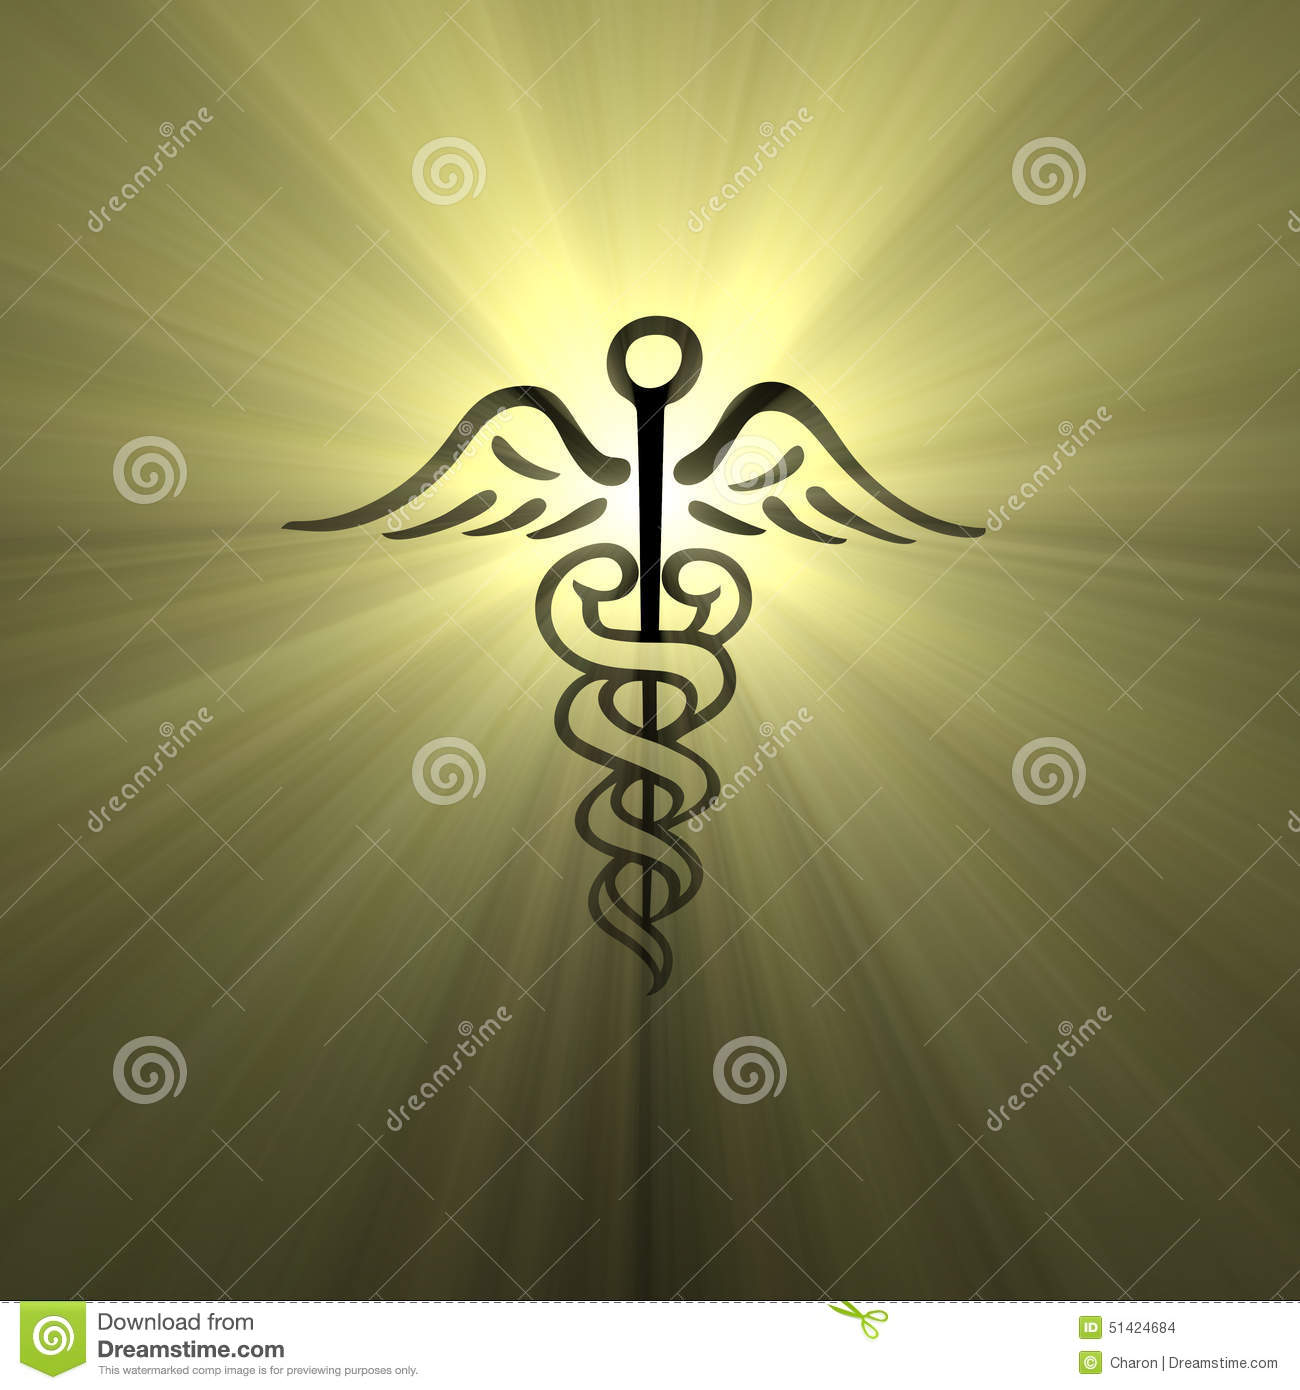 Caduceus Hermes Symbol Light Flare Stock Illustration